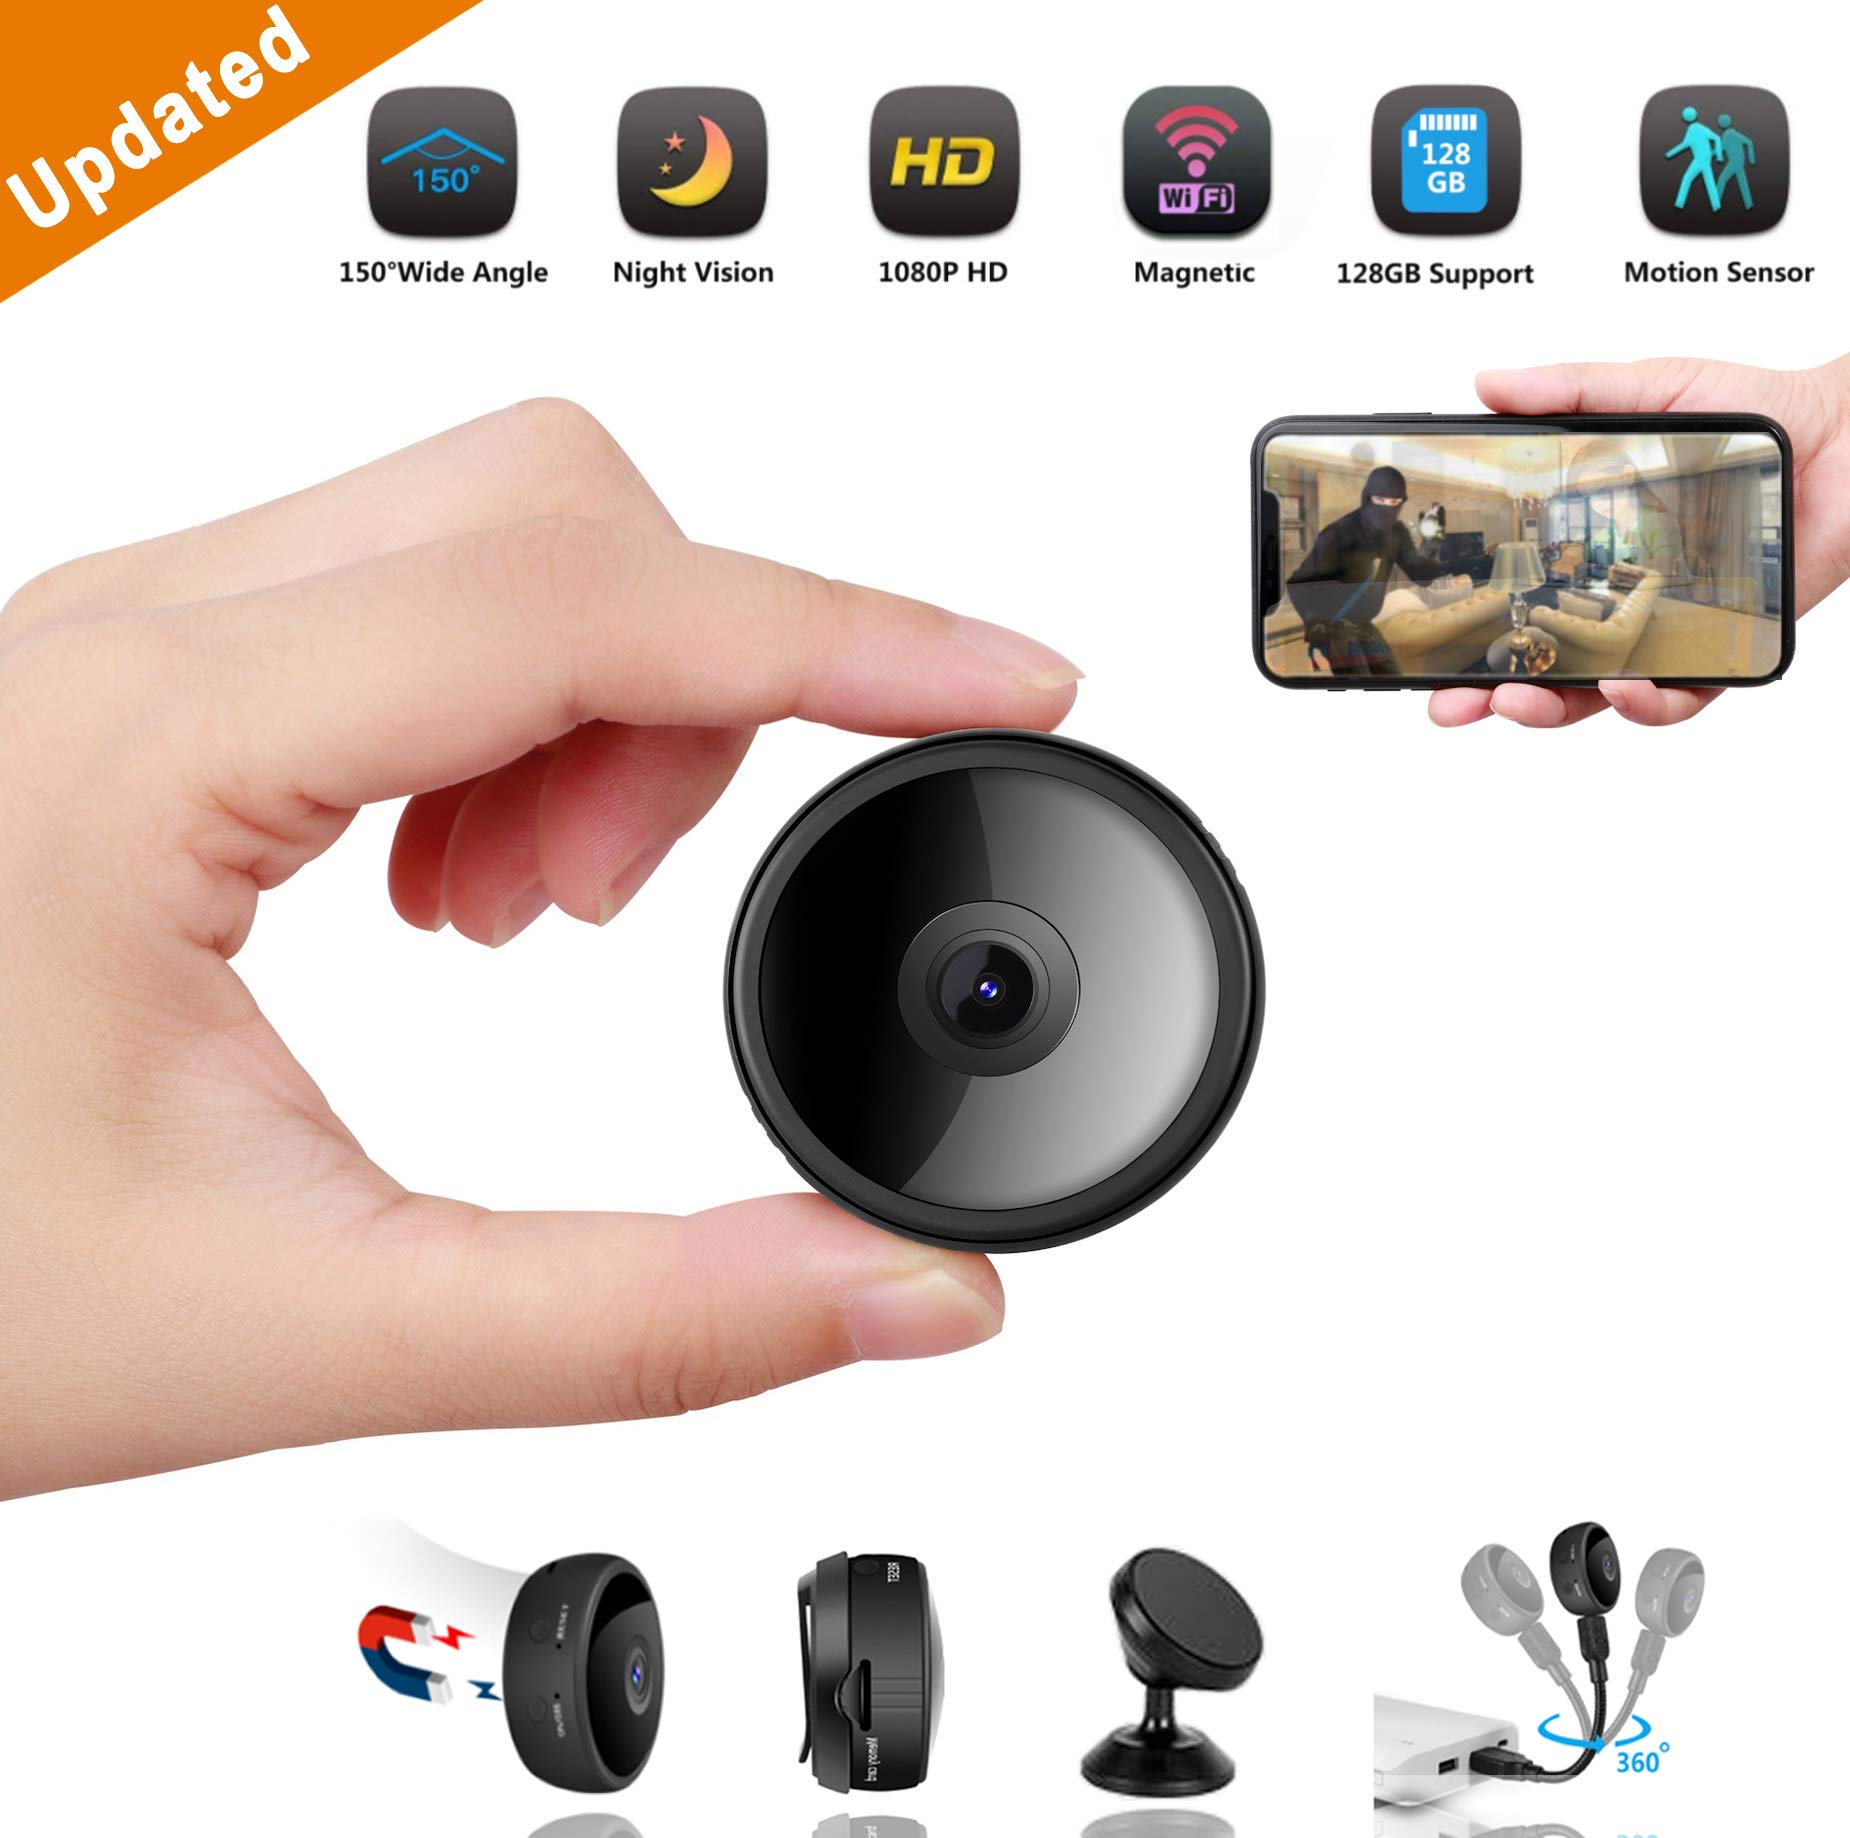 CreateGreat Mini Spy Camera Wireless Hidden Camera HD 1080P WiFi Camera Portable Home Security Cameras Nanny Cam Small Indoor Video Recorder Motion Activated Night Vision by CreateGreat